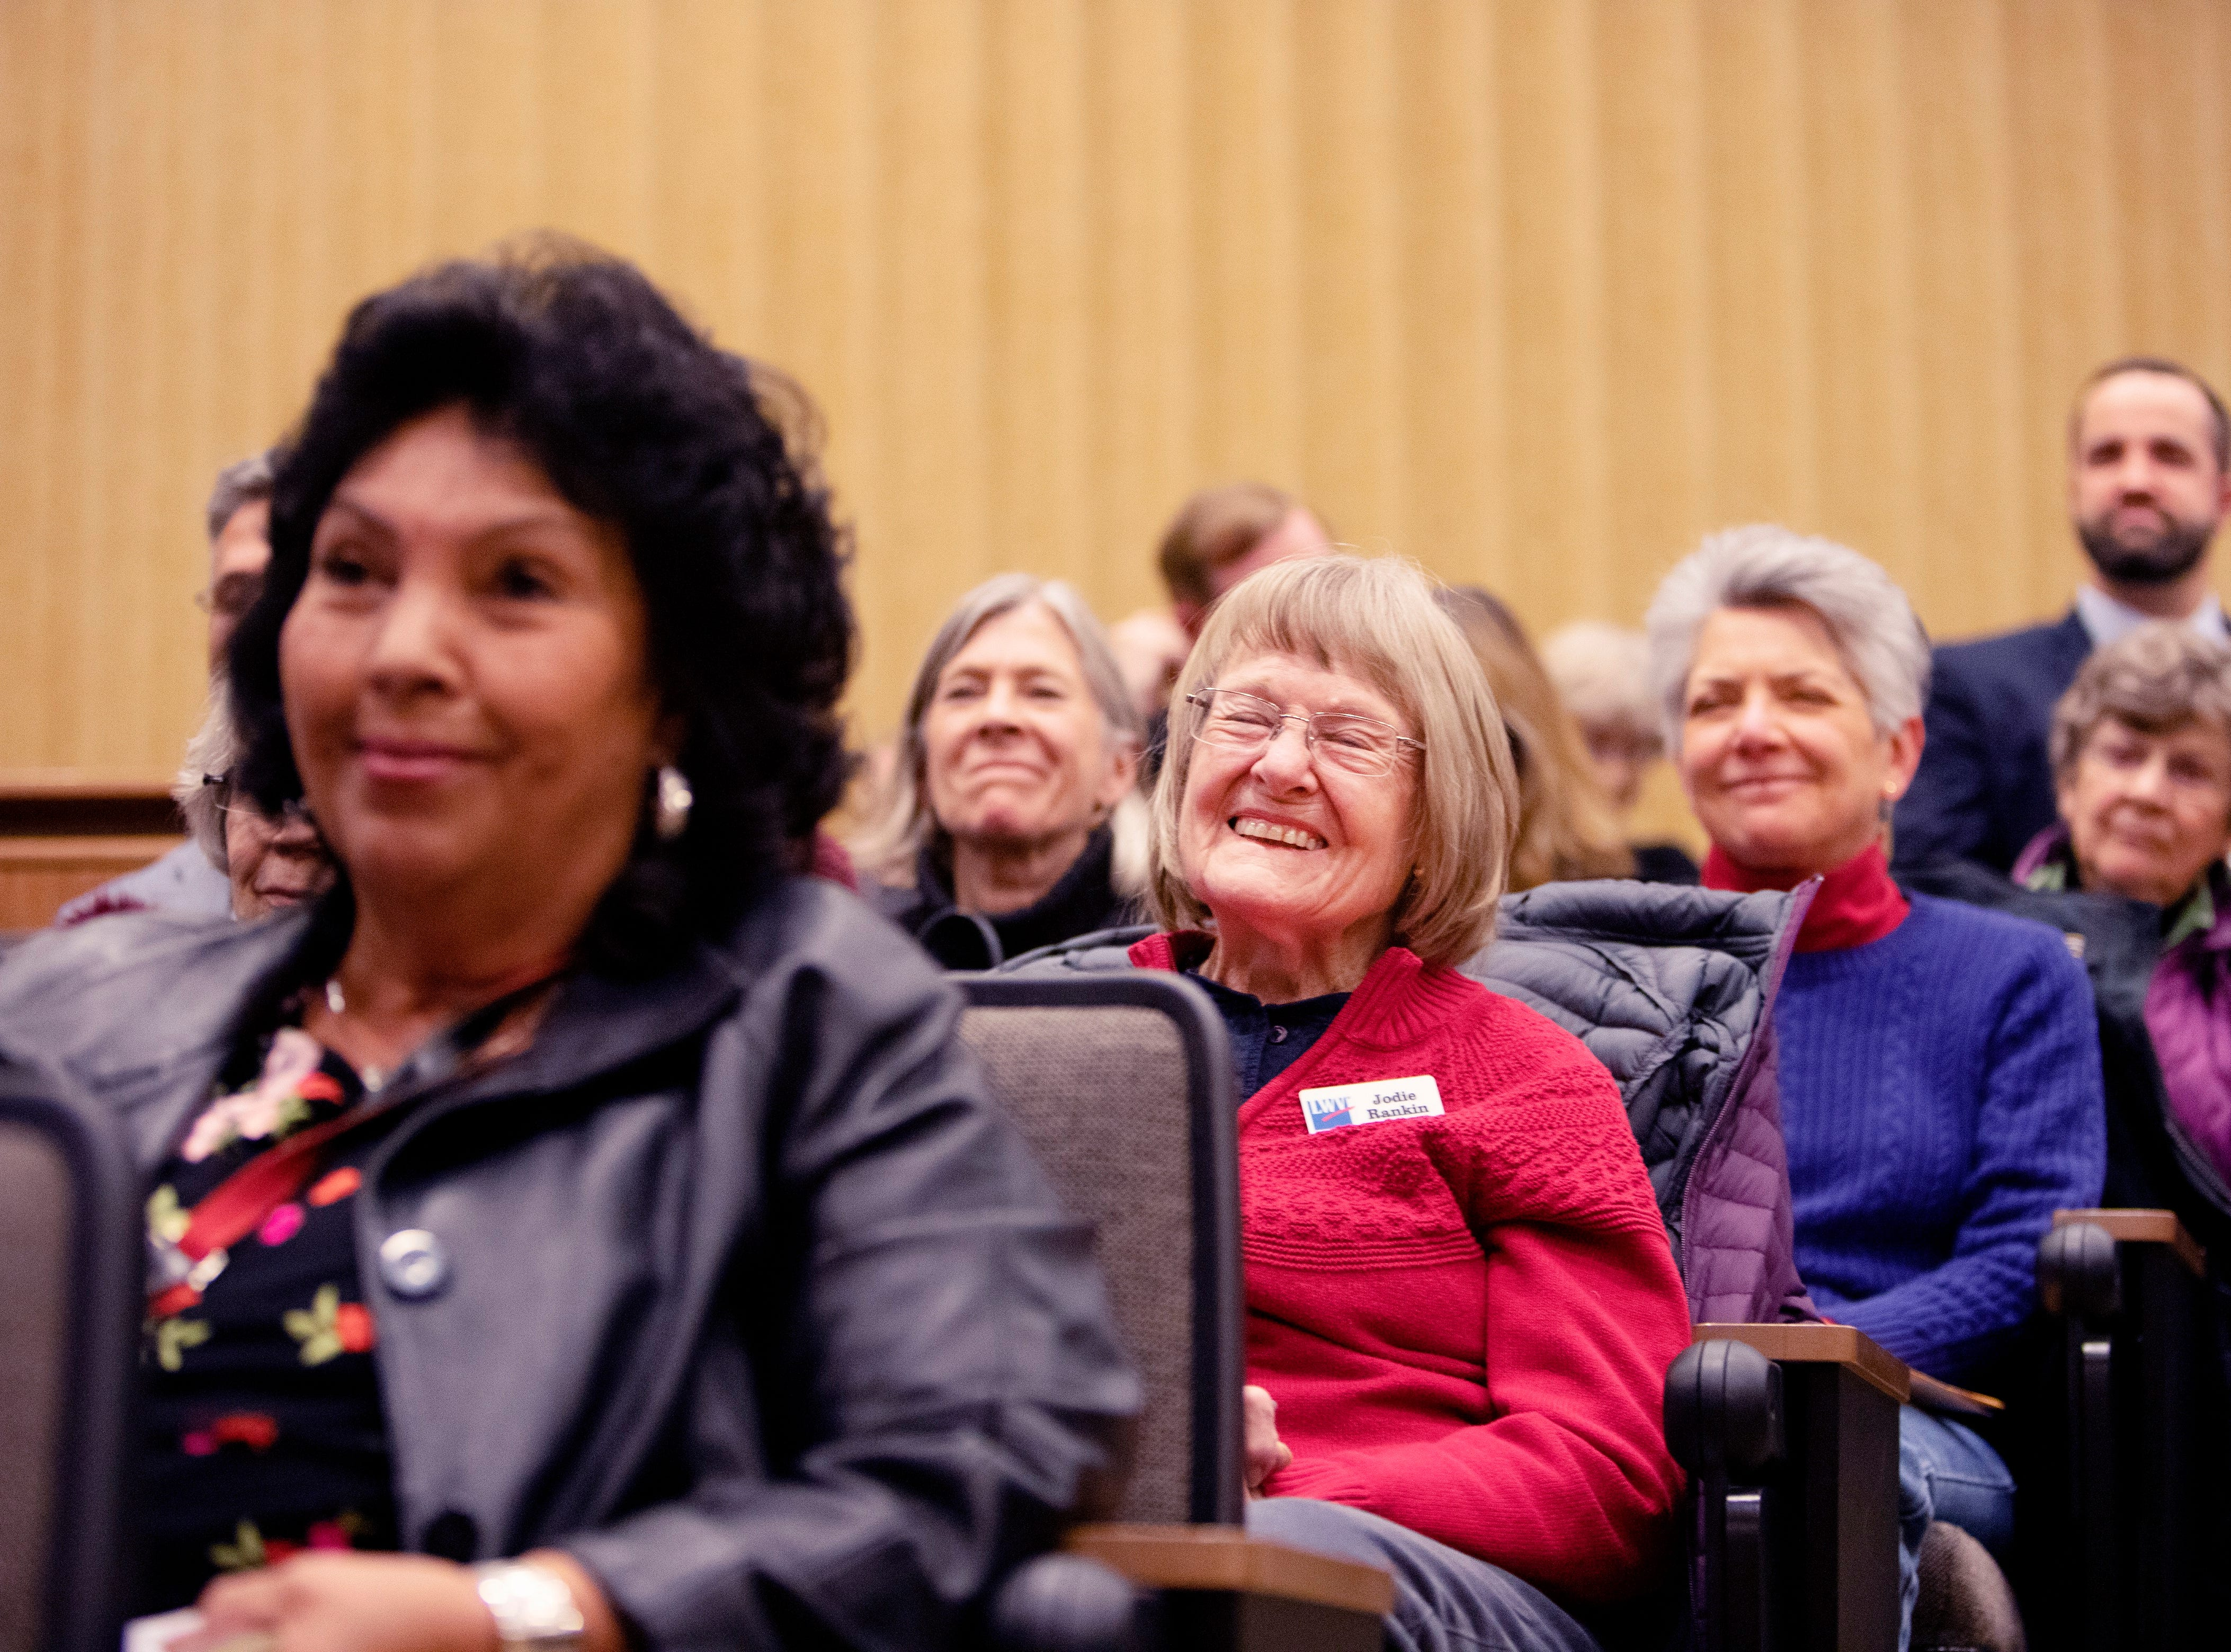 League of Women Voters member Jodie Rankin, in red, reacts to a comment made by a candidate during the forum at City Hall on March 6.